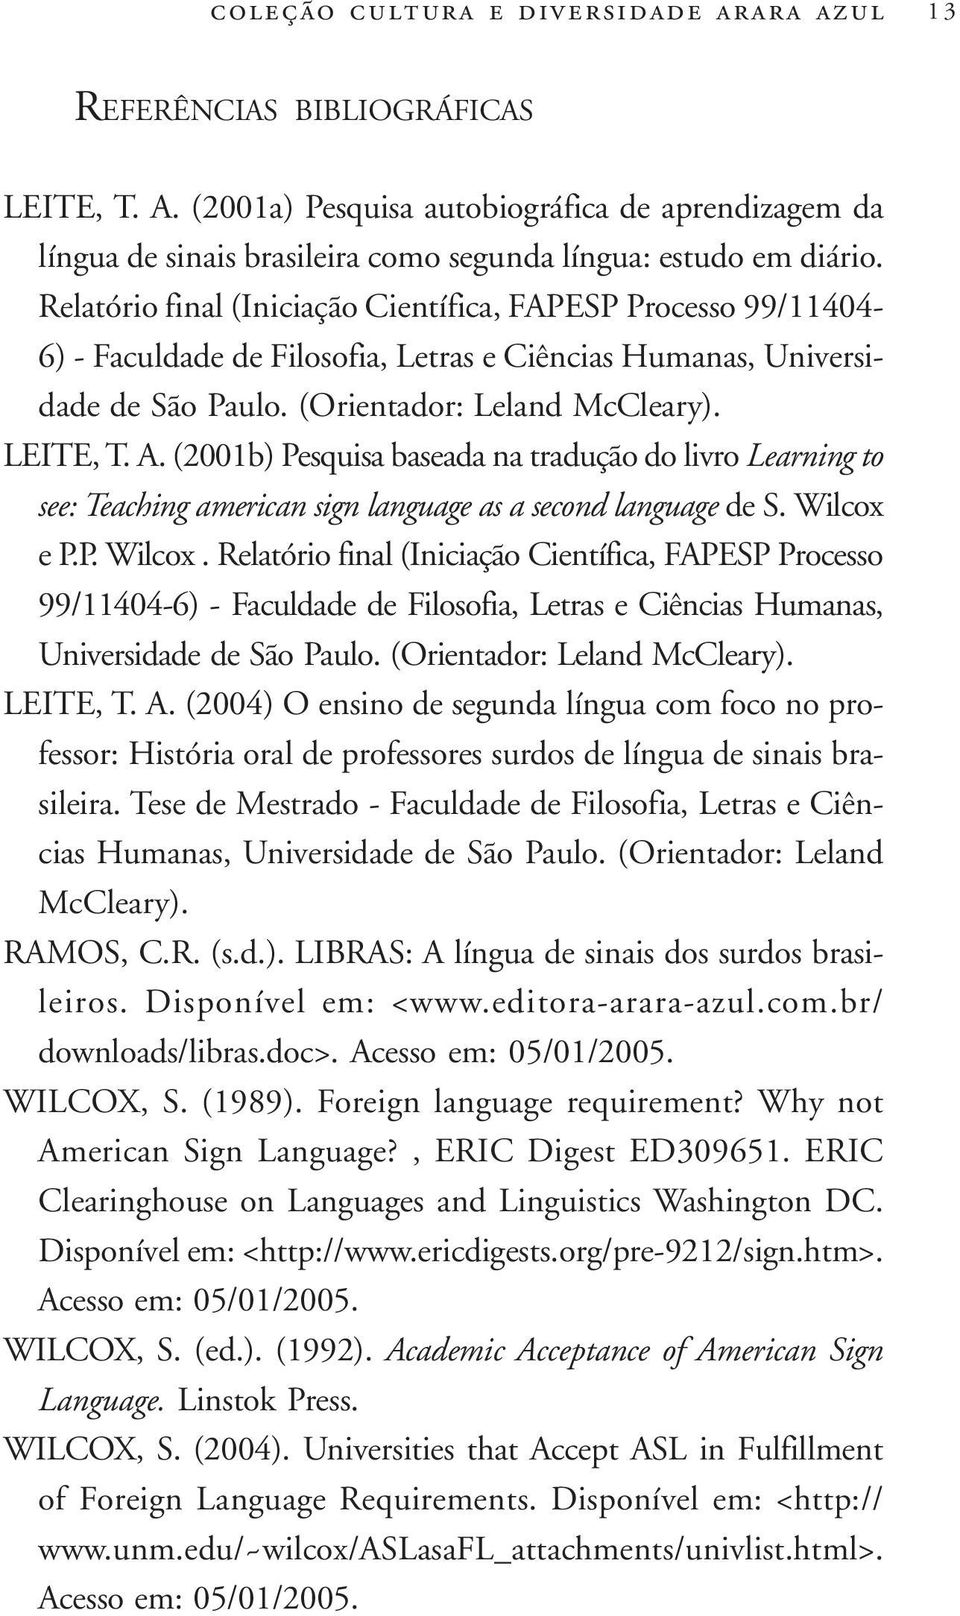 (2001b) Pesquisa baseada na tradução do livro Learning to see: Teaching american sign language as a second language de S. Wilcox